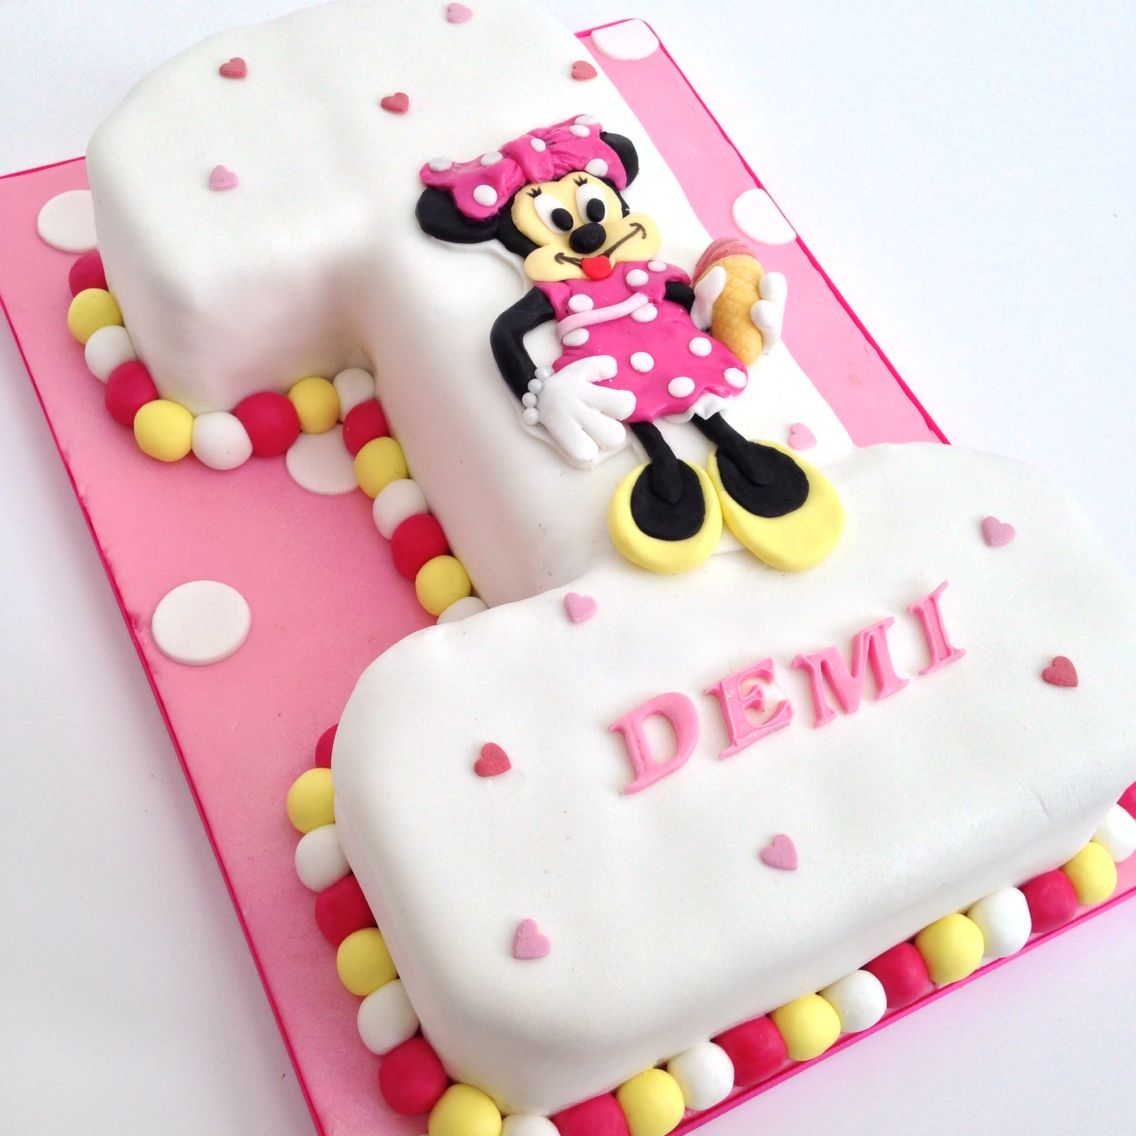 Minnie Mouse age 1 birthday cake by Honey Whispers www